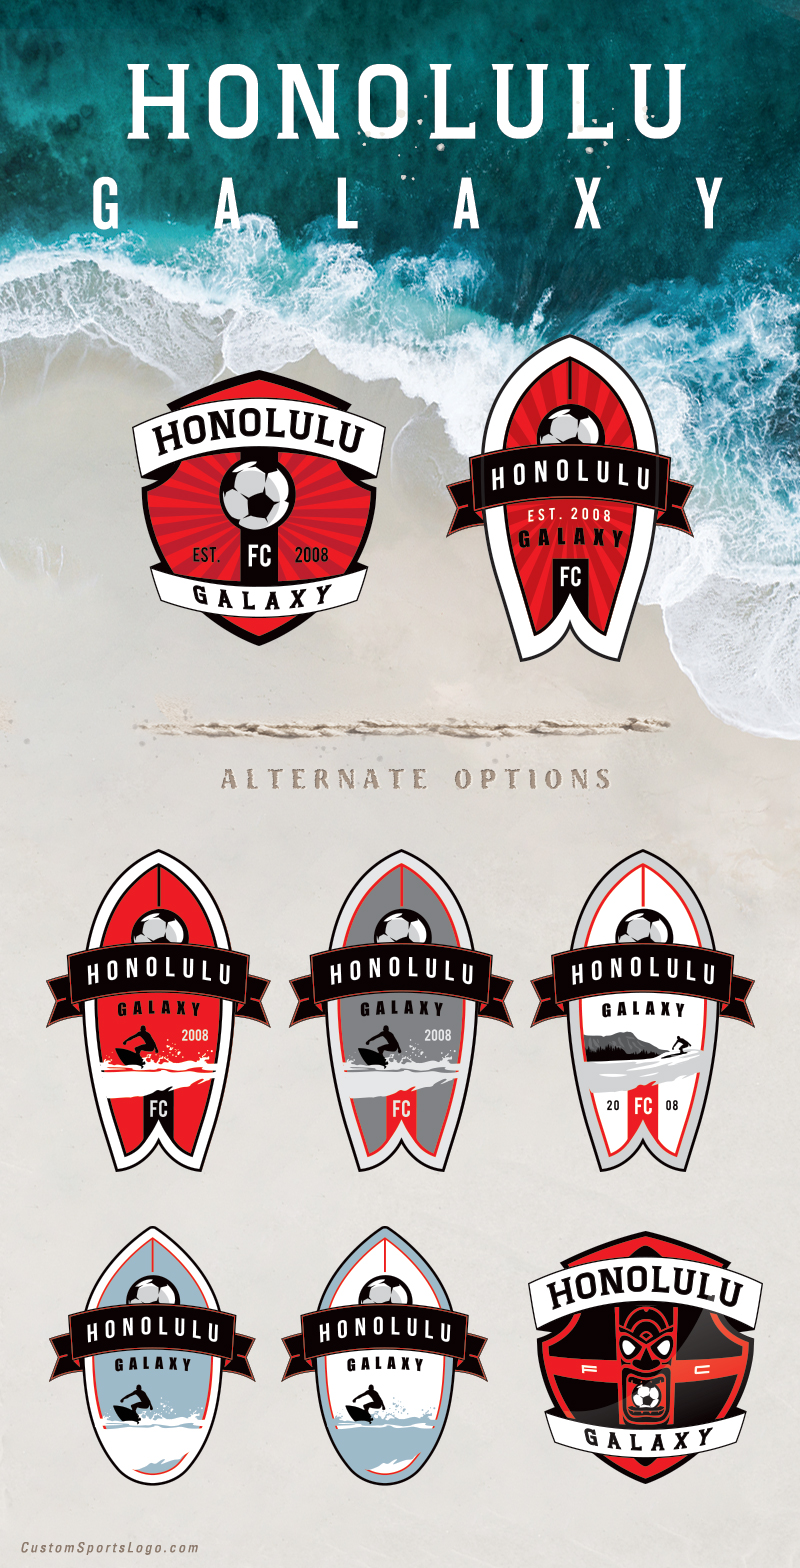 custom-soccer-logo-design-options-for-honolulu-galaxy.jpg